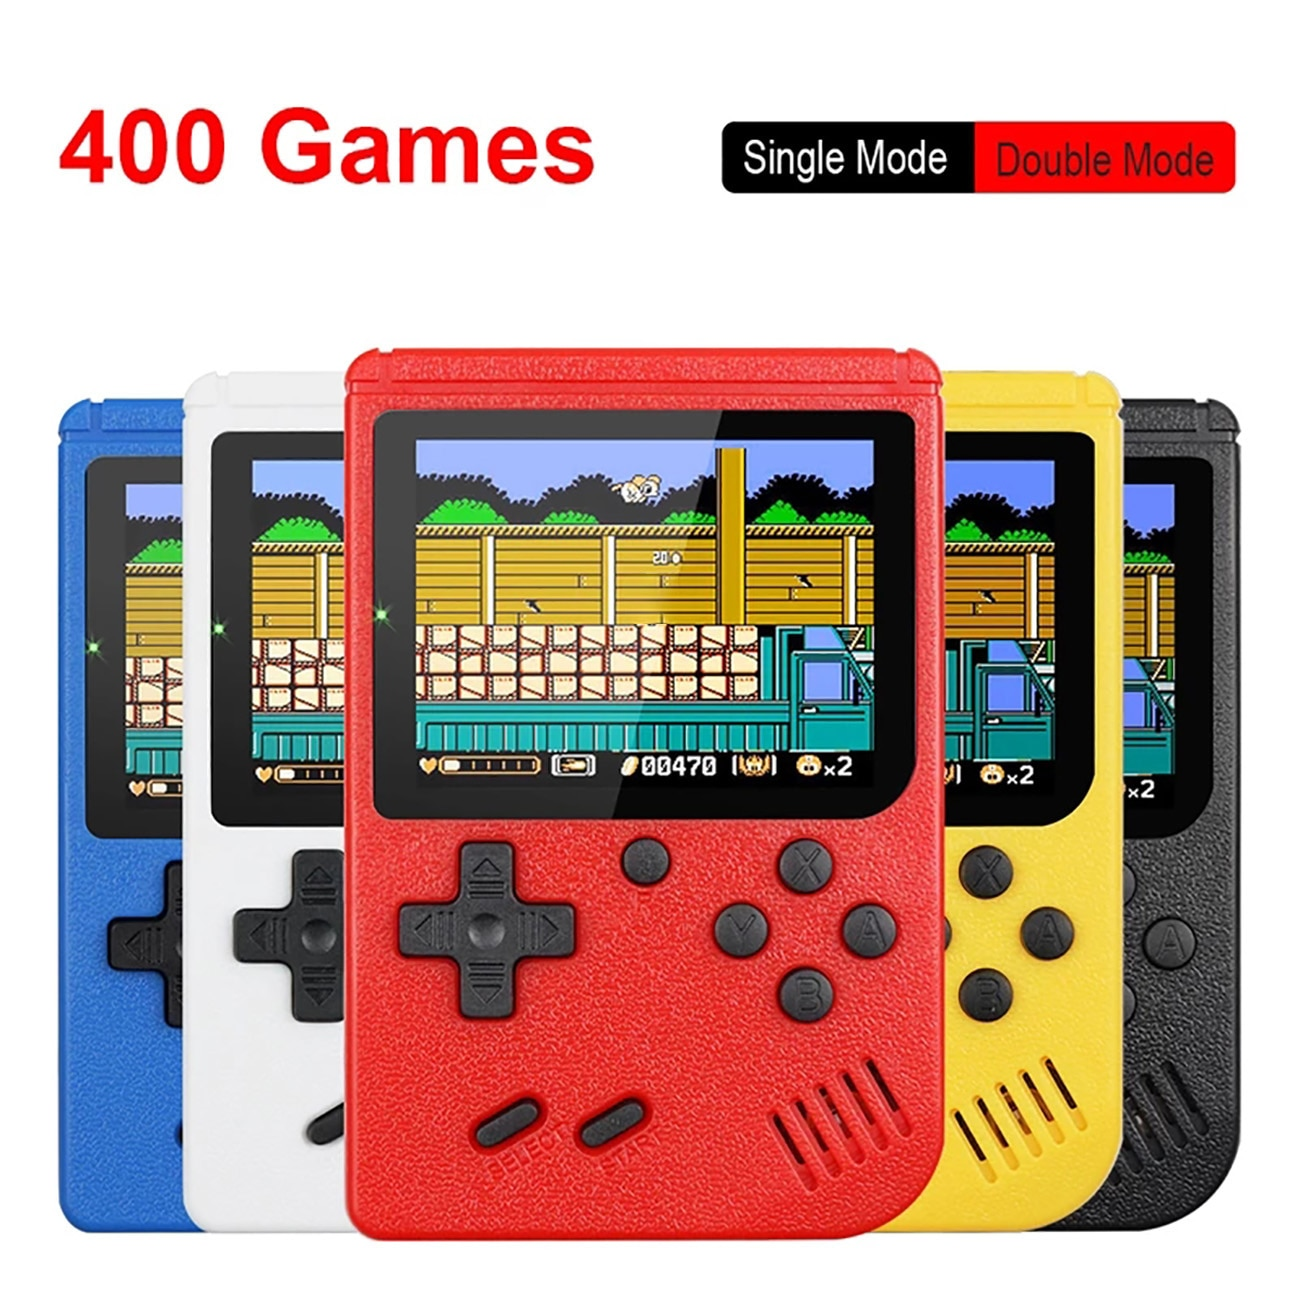 Retro Portable Mini Handheld Video Game Console 8-Bit 3.0 Inch Color LCD Kids Color Game Player Built-in game console for TV